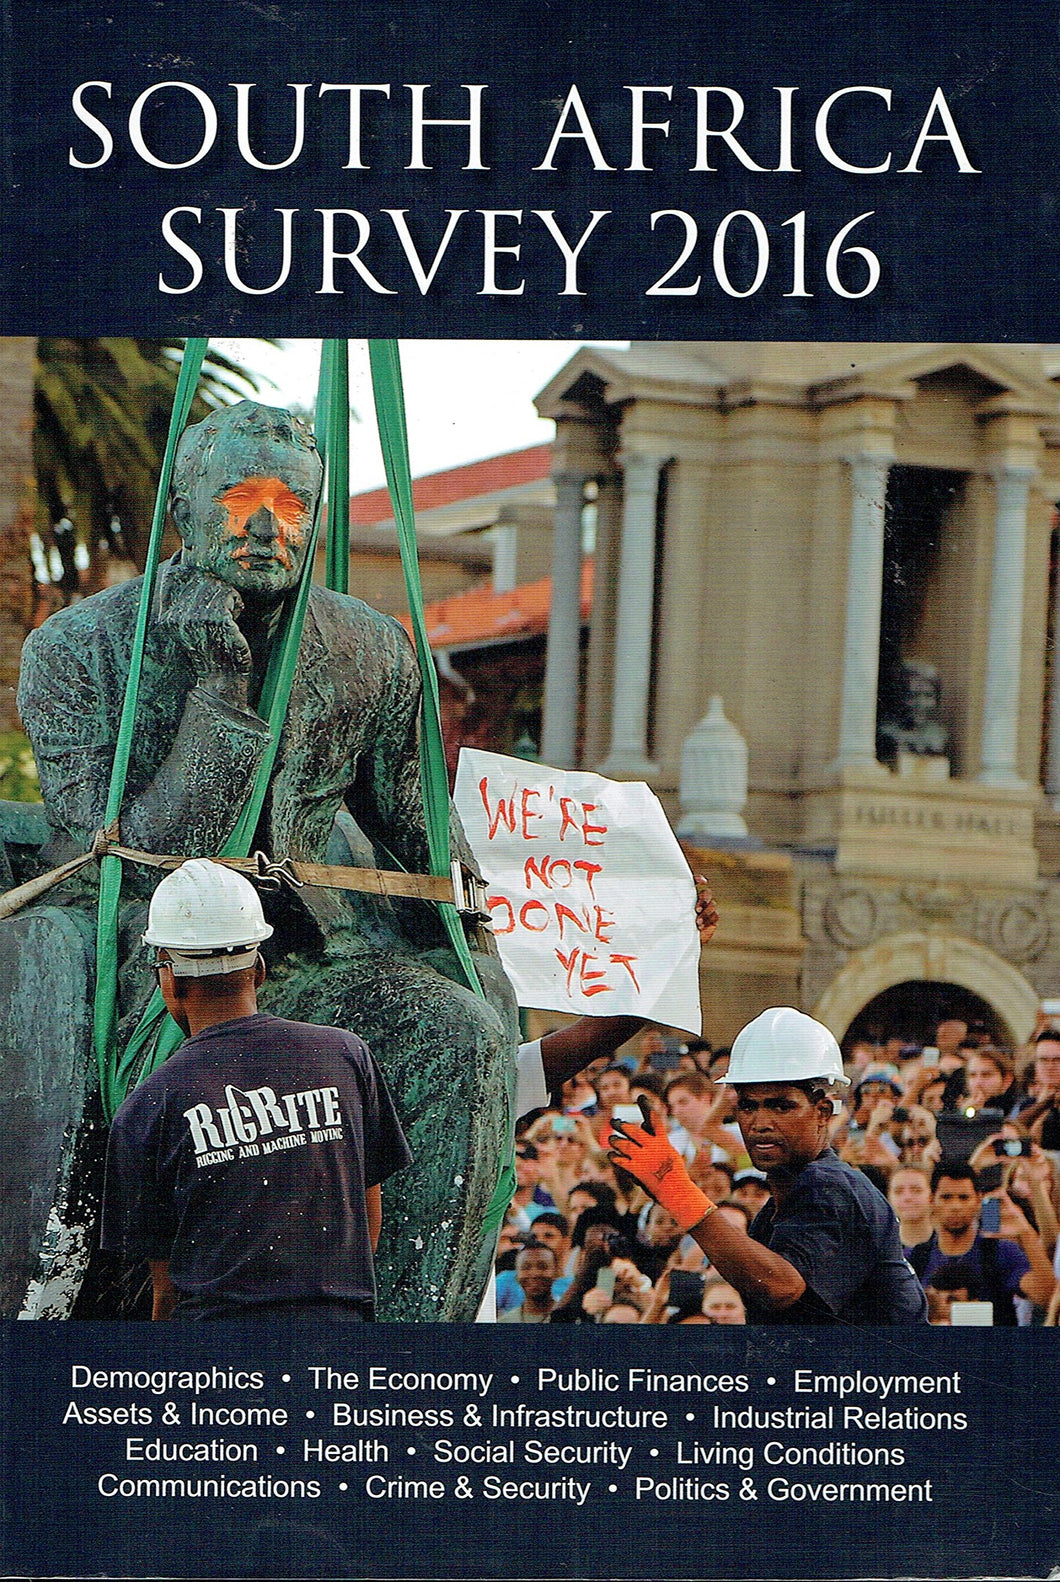 South Africa Survey 2016